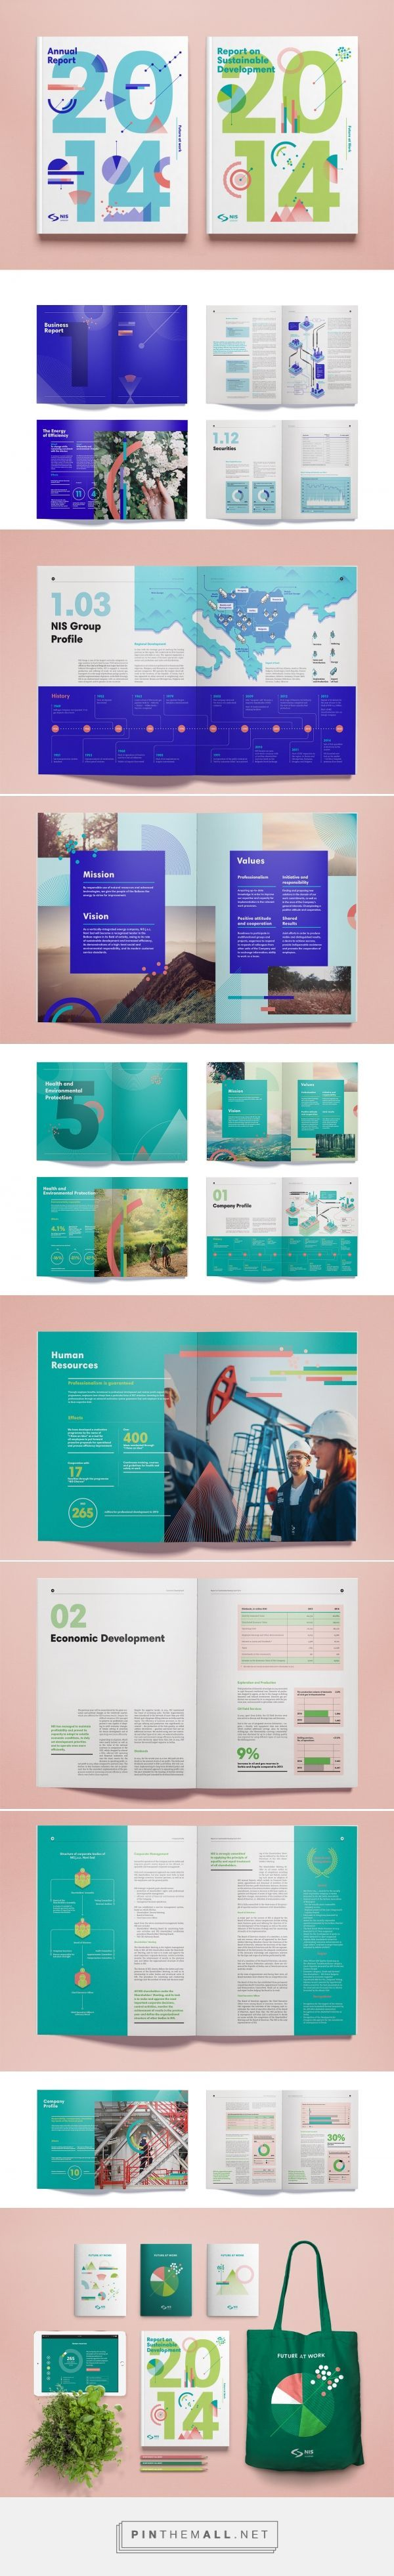 NIS Annual Report 2014 on Behance                              …                                                                                                                                                     Mo